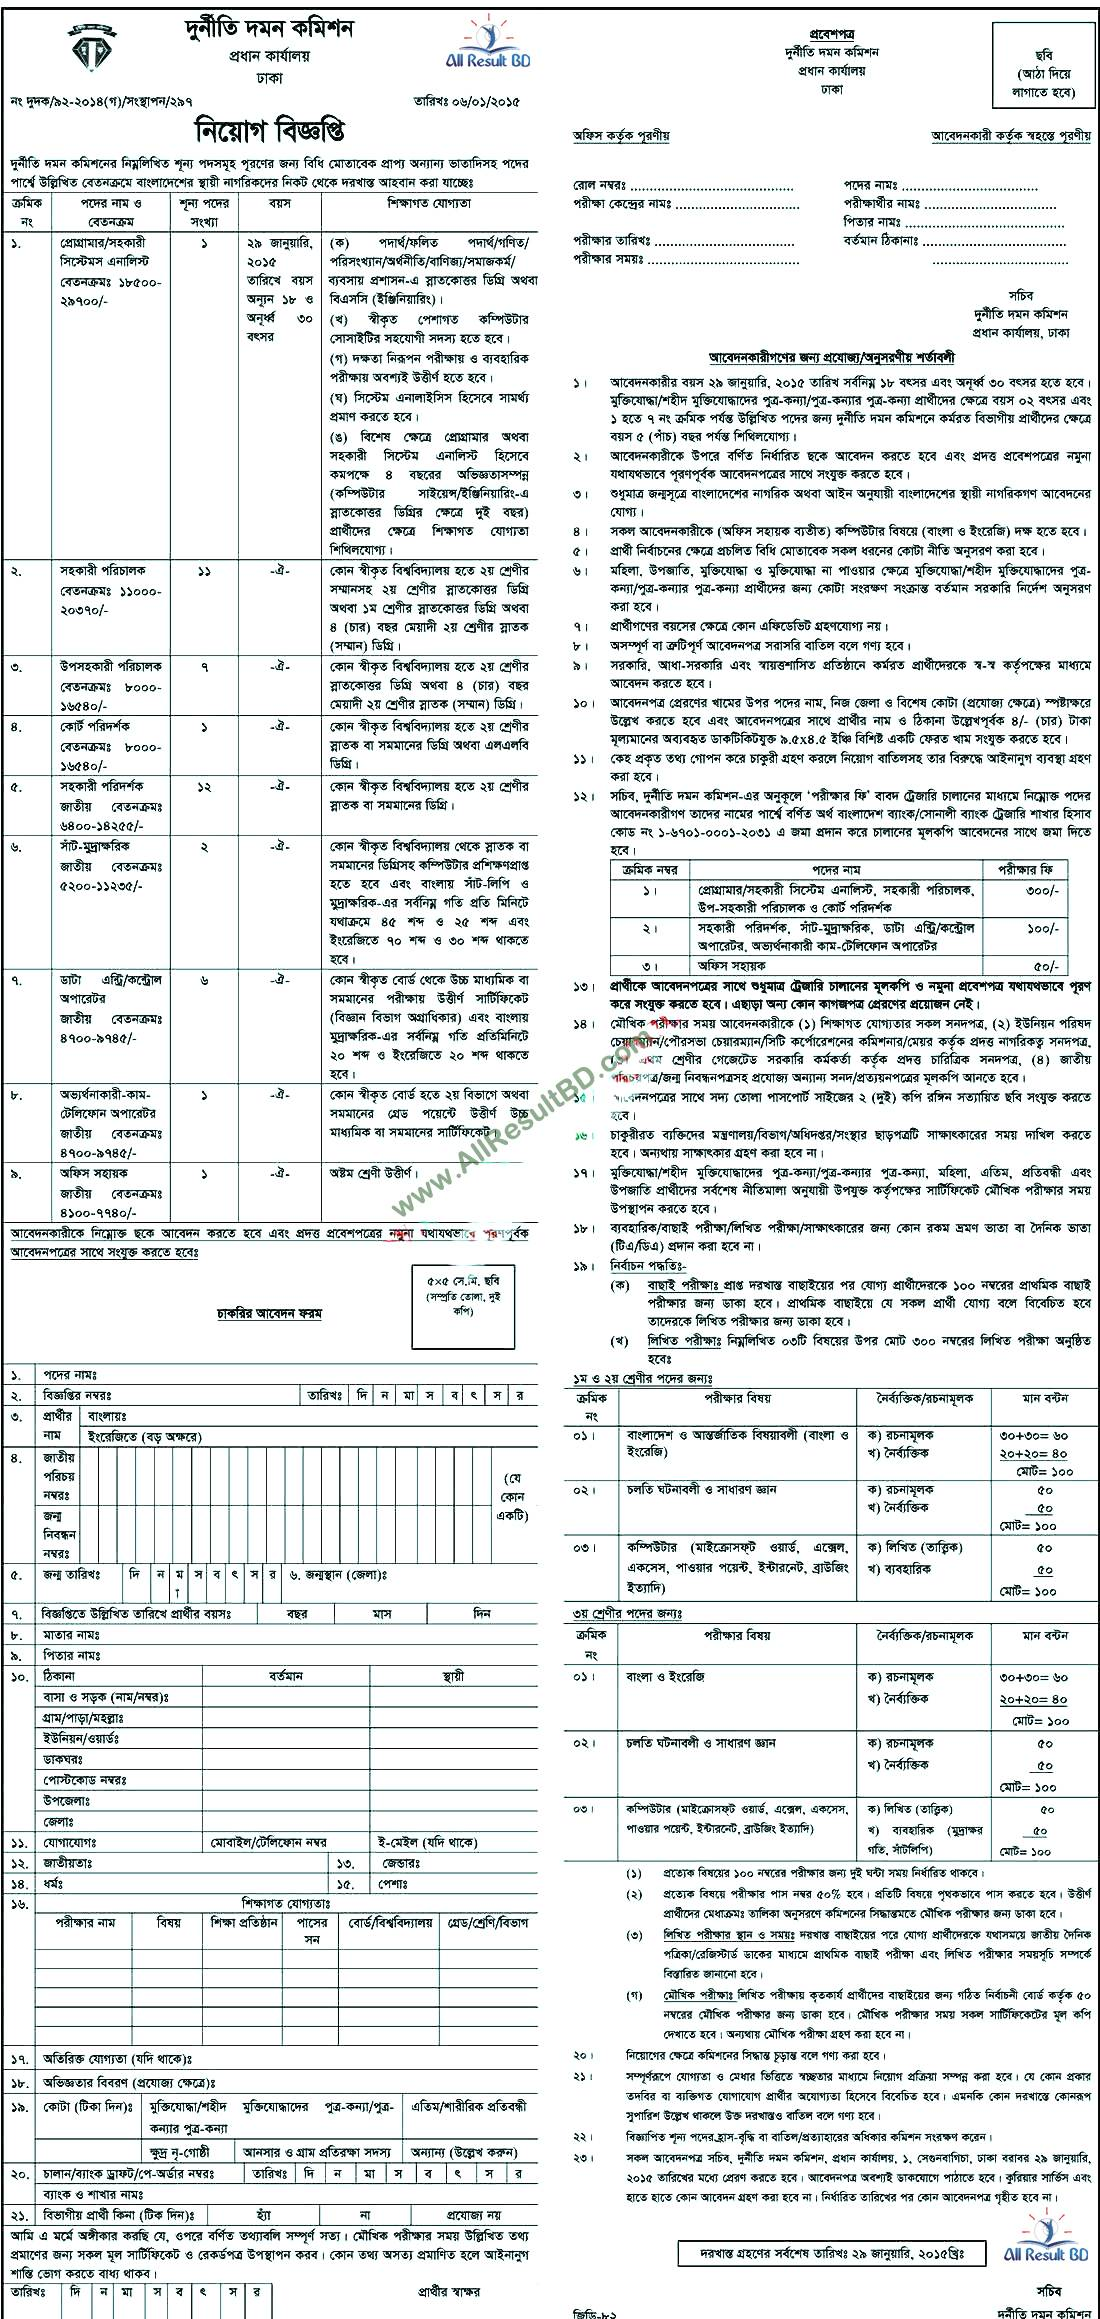 Durniti Domon Commission (DUDOK) Job Circular Result 2015